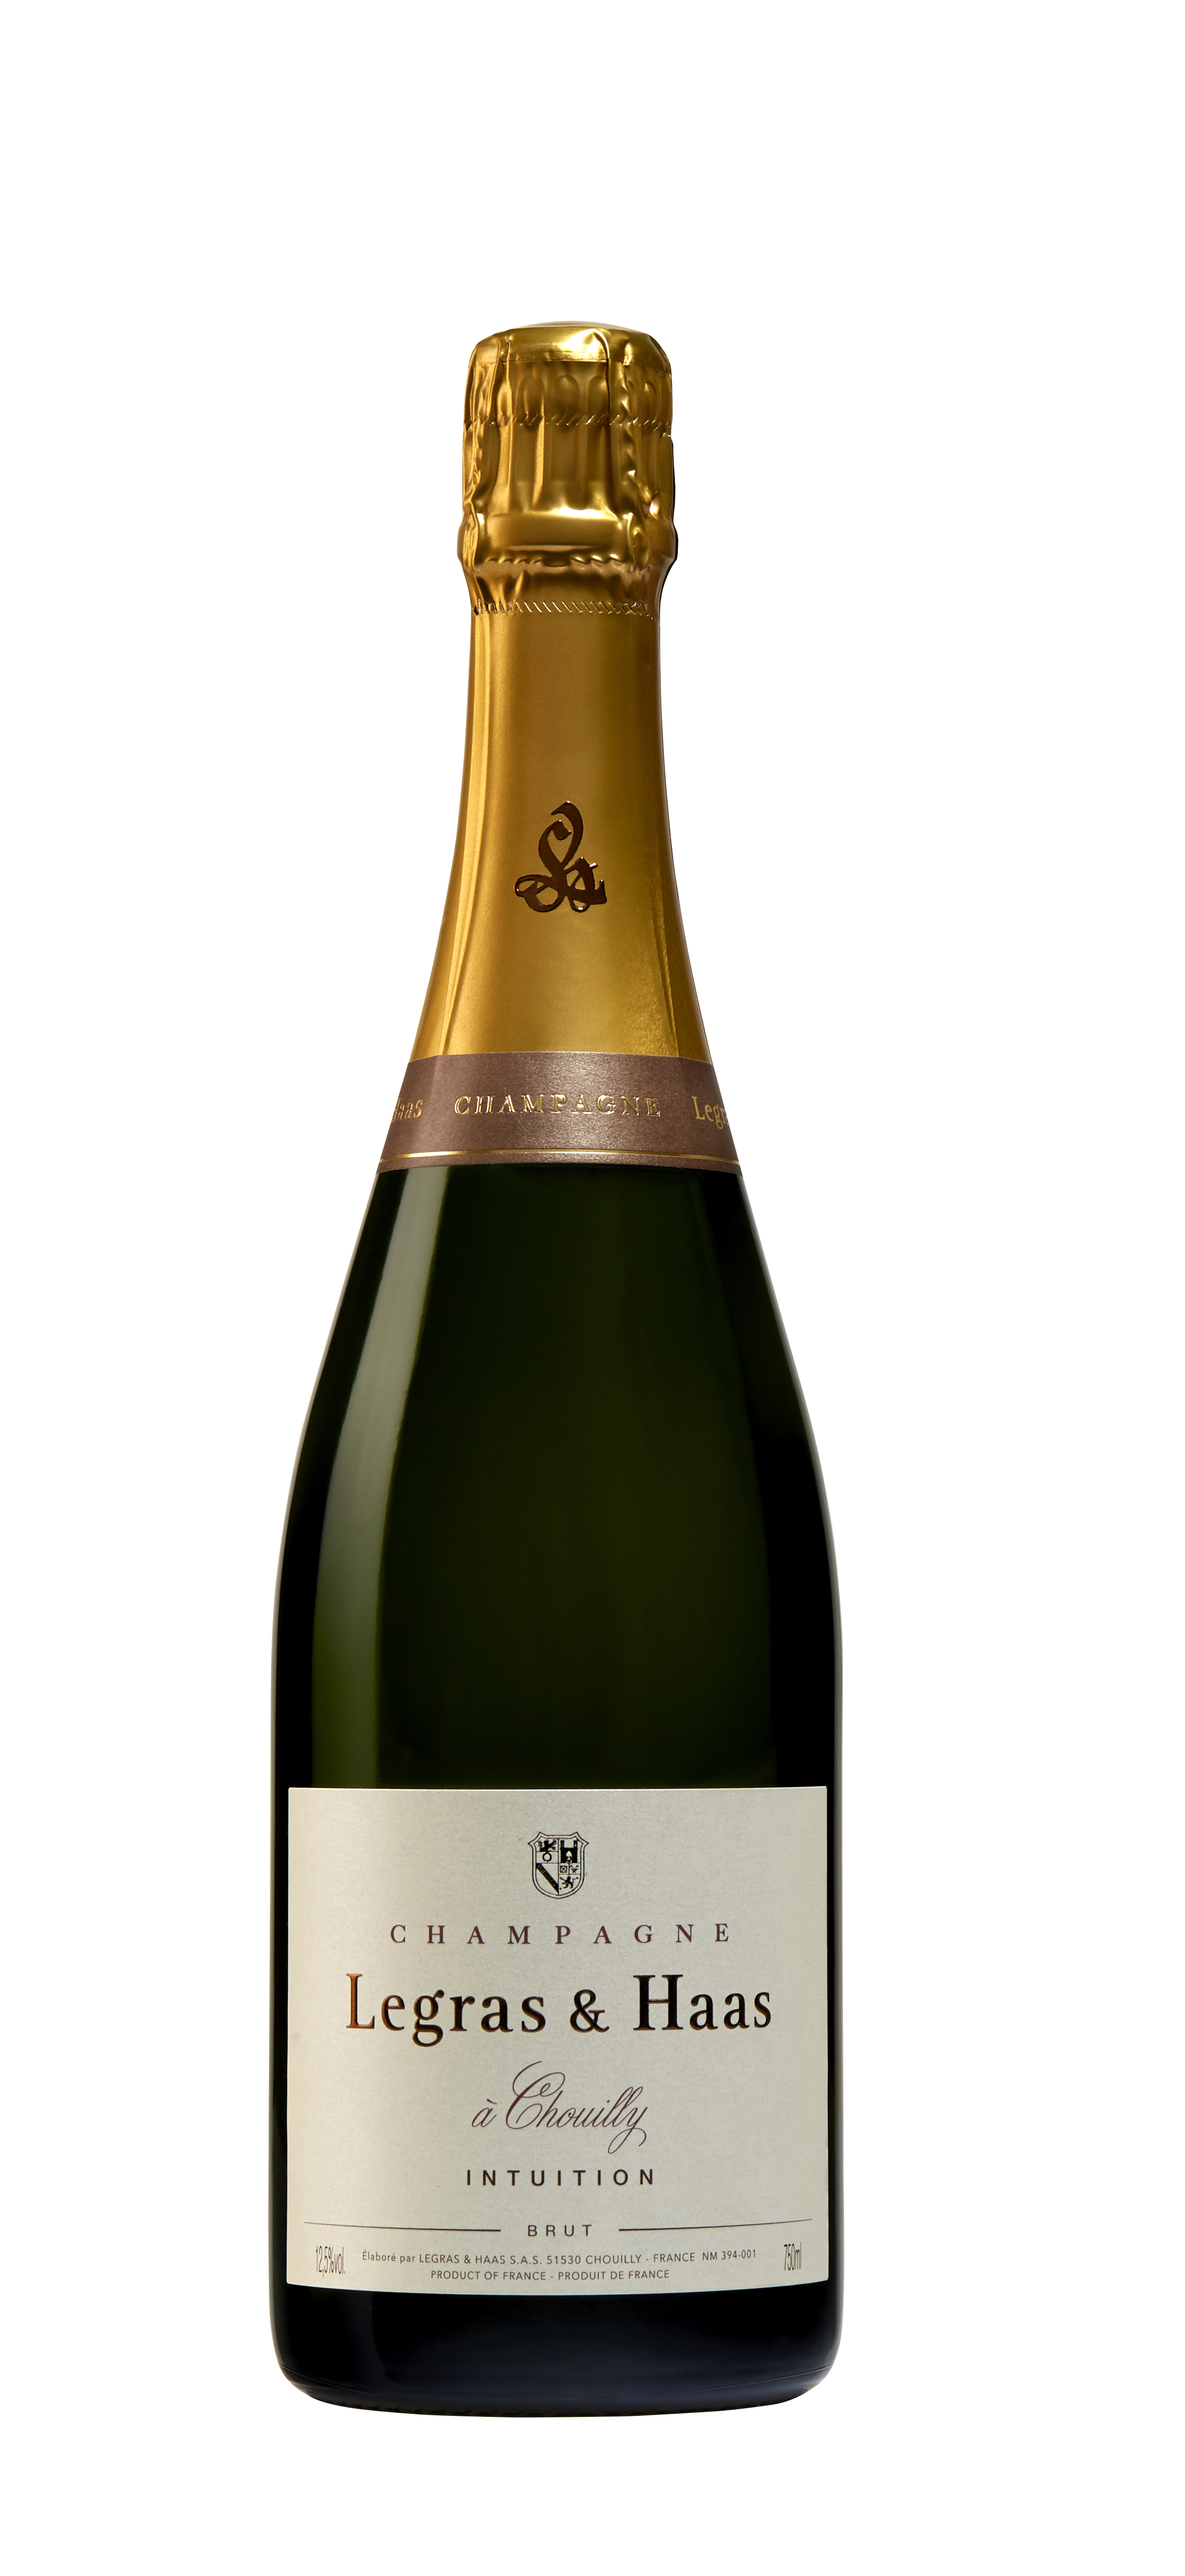 Legras & Haas Intuition Brut (1/2 bottle)